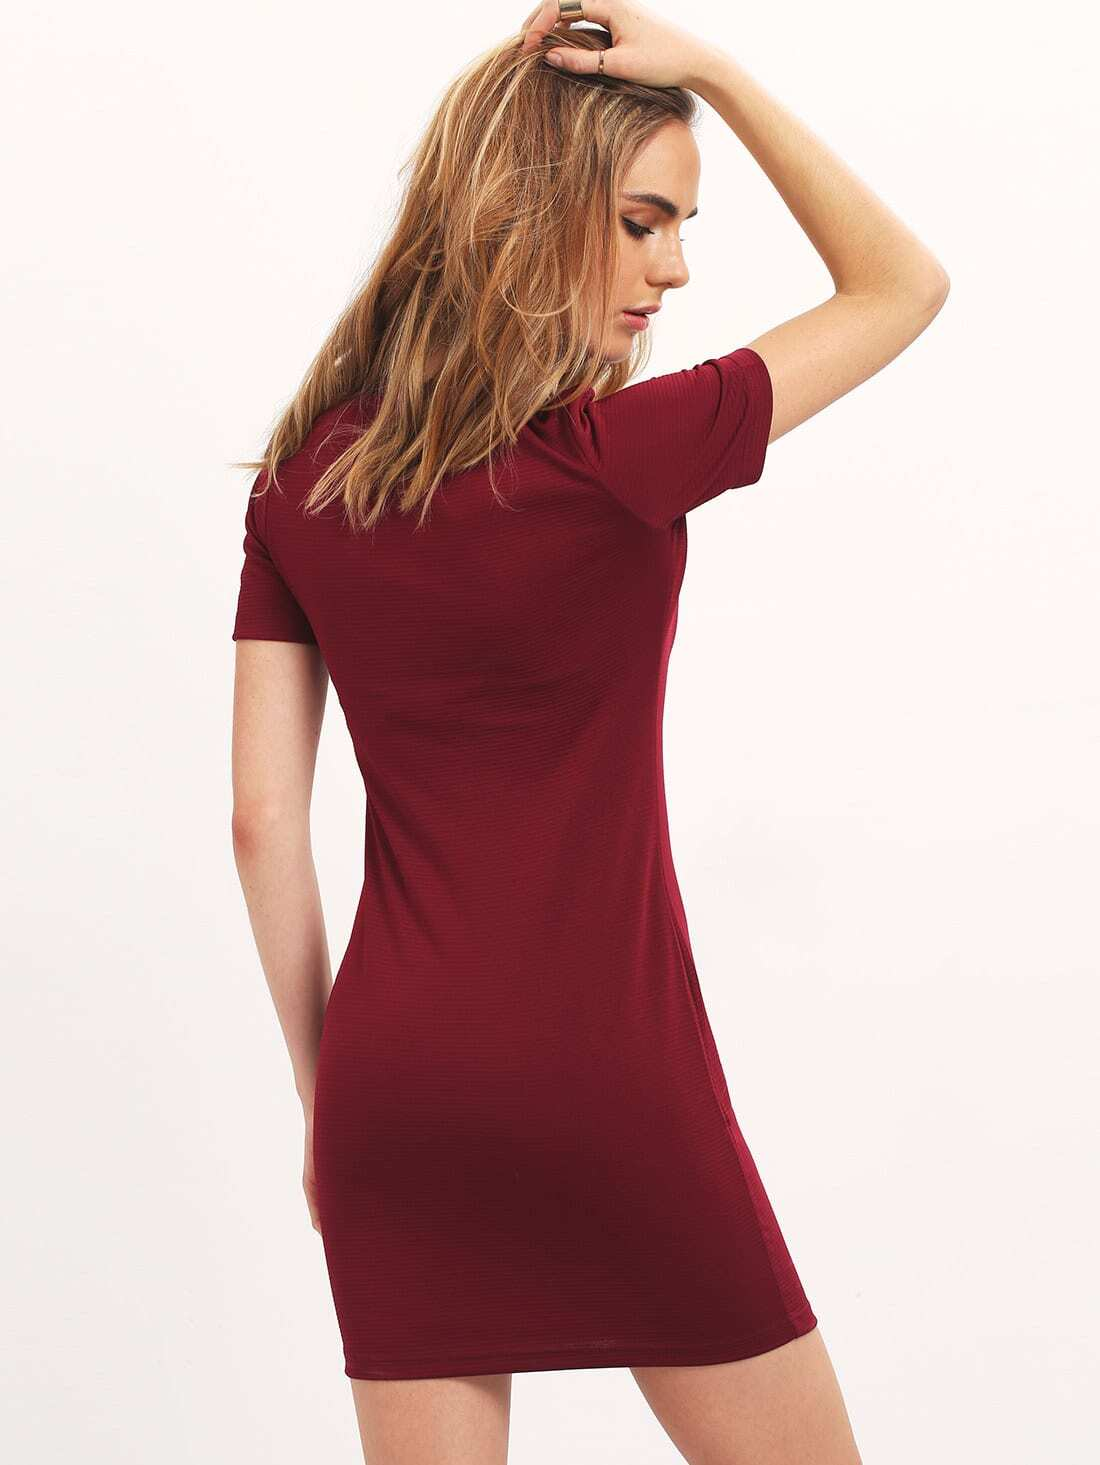 Robe moulante col rond rouge bordeaux french romwe for Interieur paupiere inferieure rouge